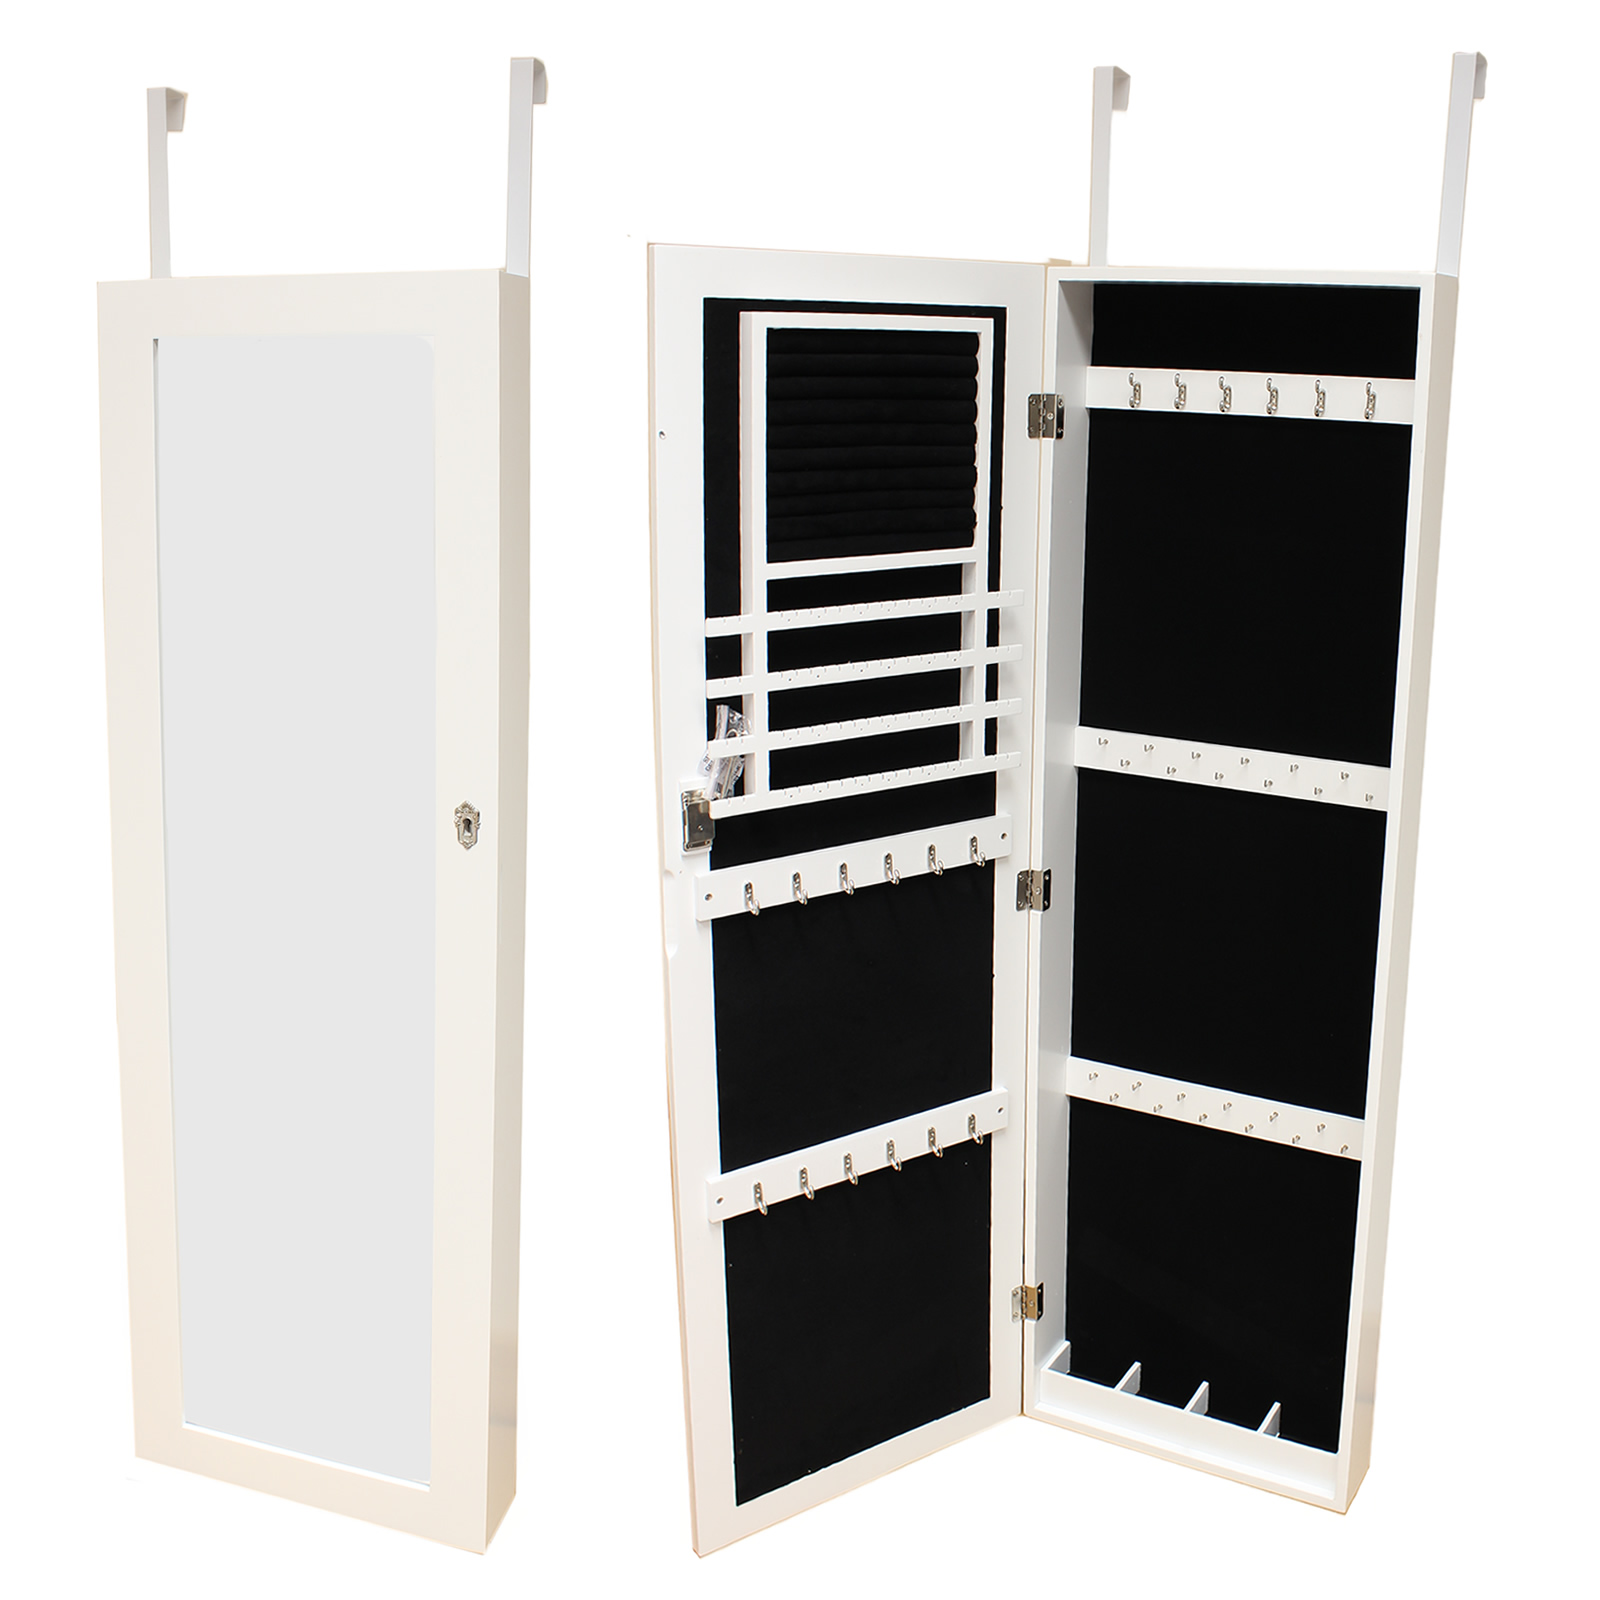 large white wall door mounted mirror jewellery box cabinet organiser full length ebay. Black Bedroom Furniture Sets. Home Design Ideas